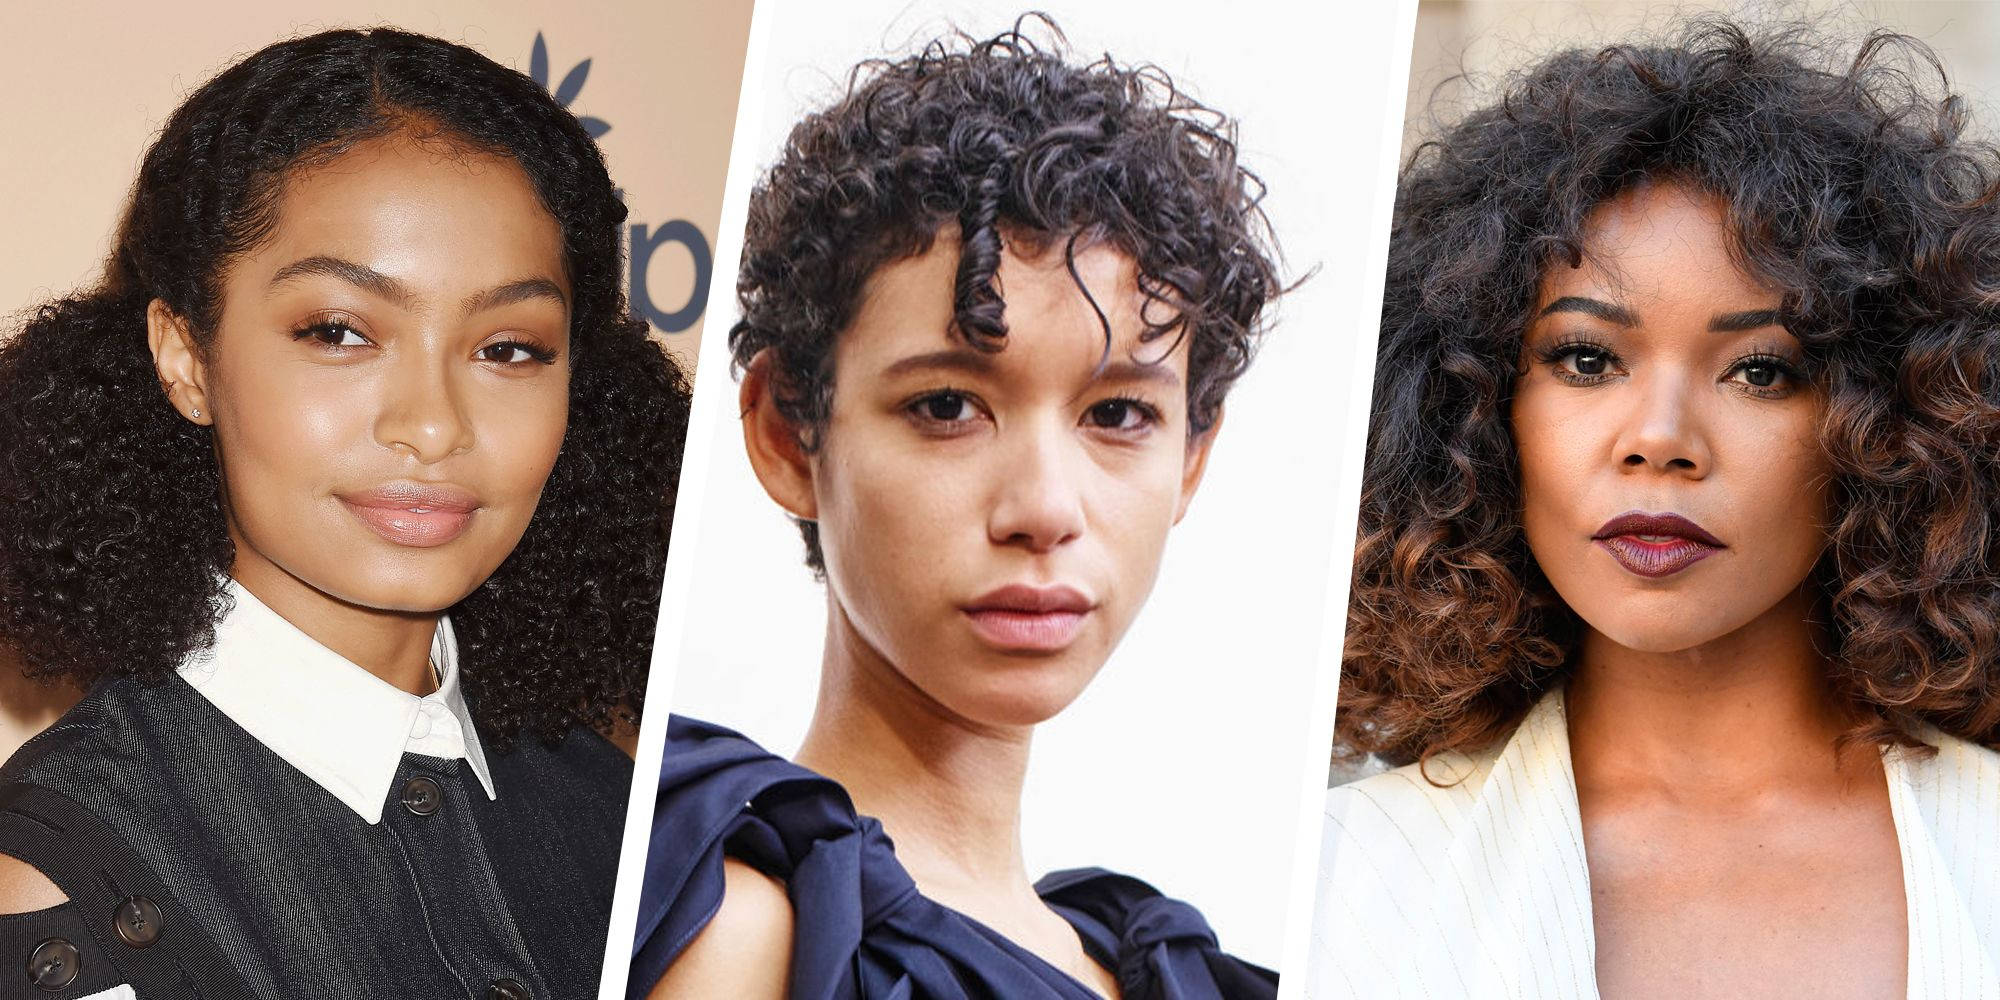 20 Easy Curly Hairstyles - How to Style Long, Medium, or Short Curly ...